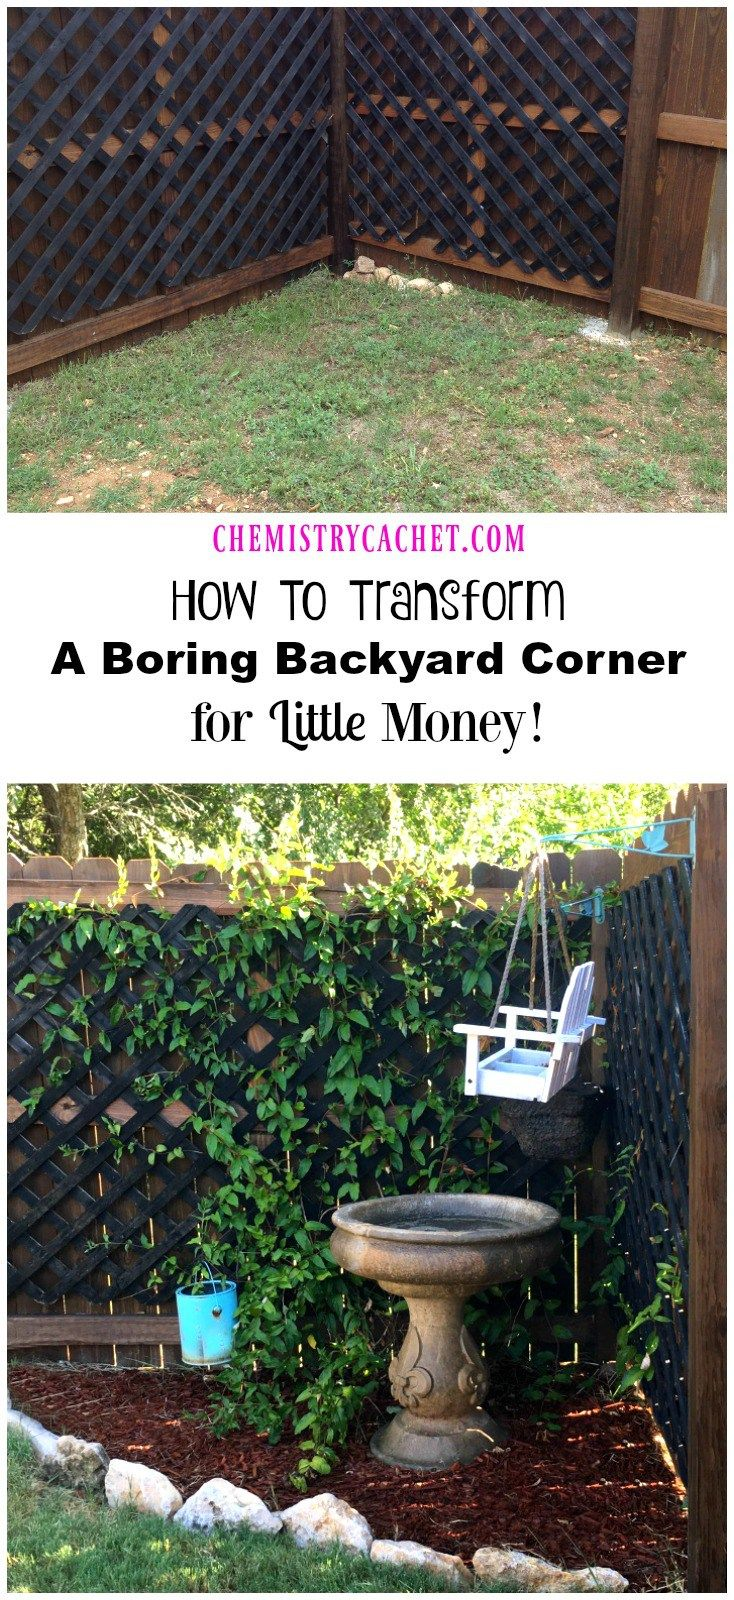 How To Transform A Boring Backyard Corner for LITTLE money! Turn any corner of your yard into a pretty little garden! on chemistrycachet.com